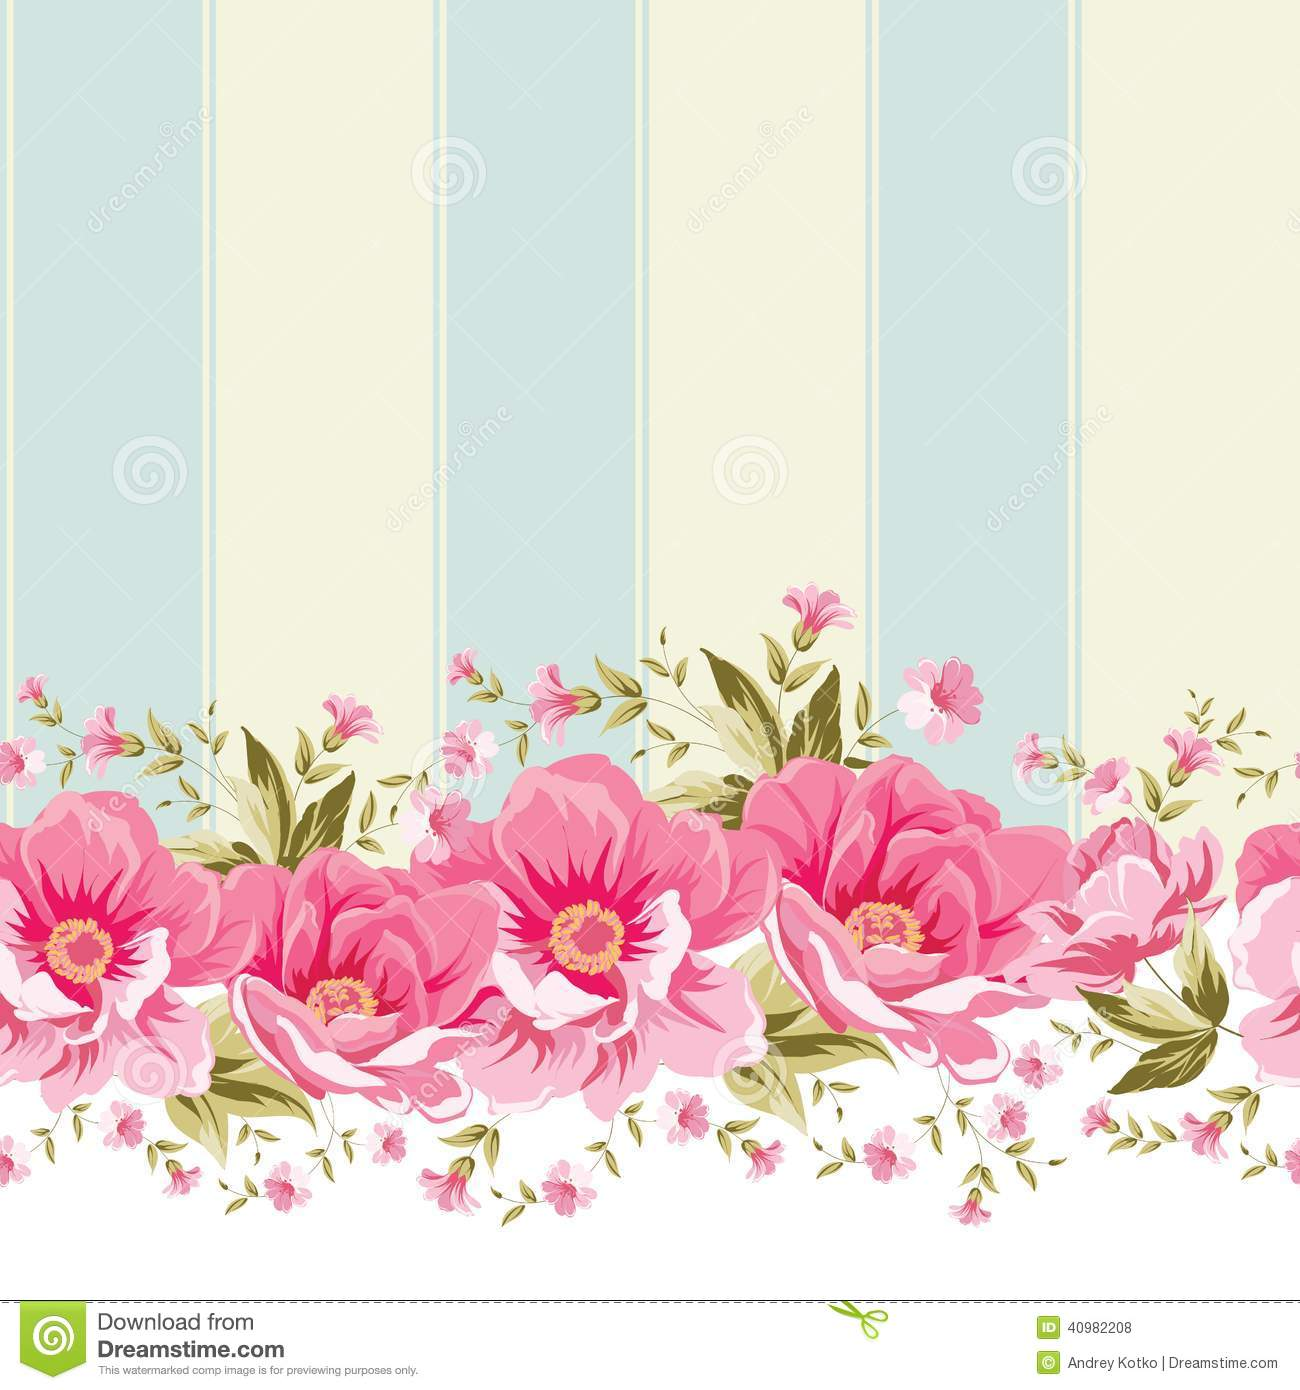 Ornate Pink Flower Border With Tile Stock Vector Illustration